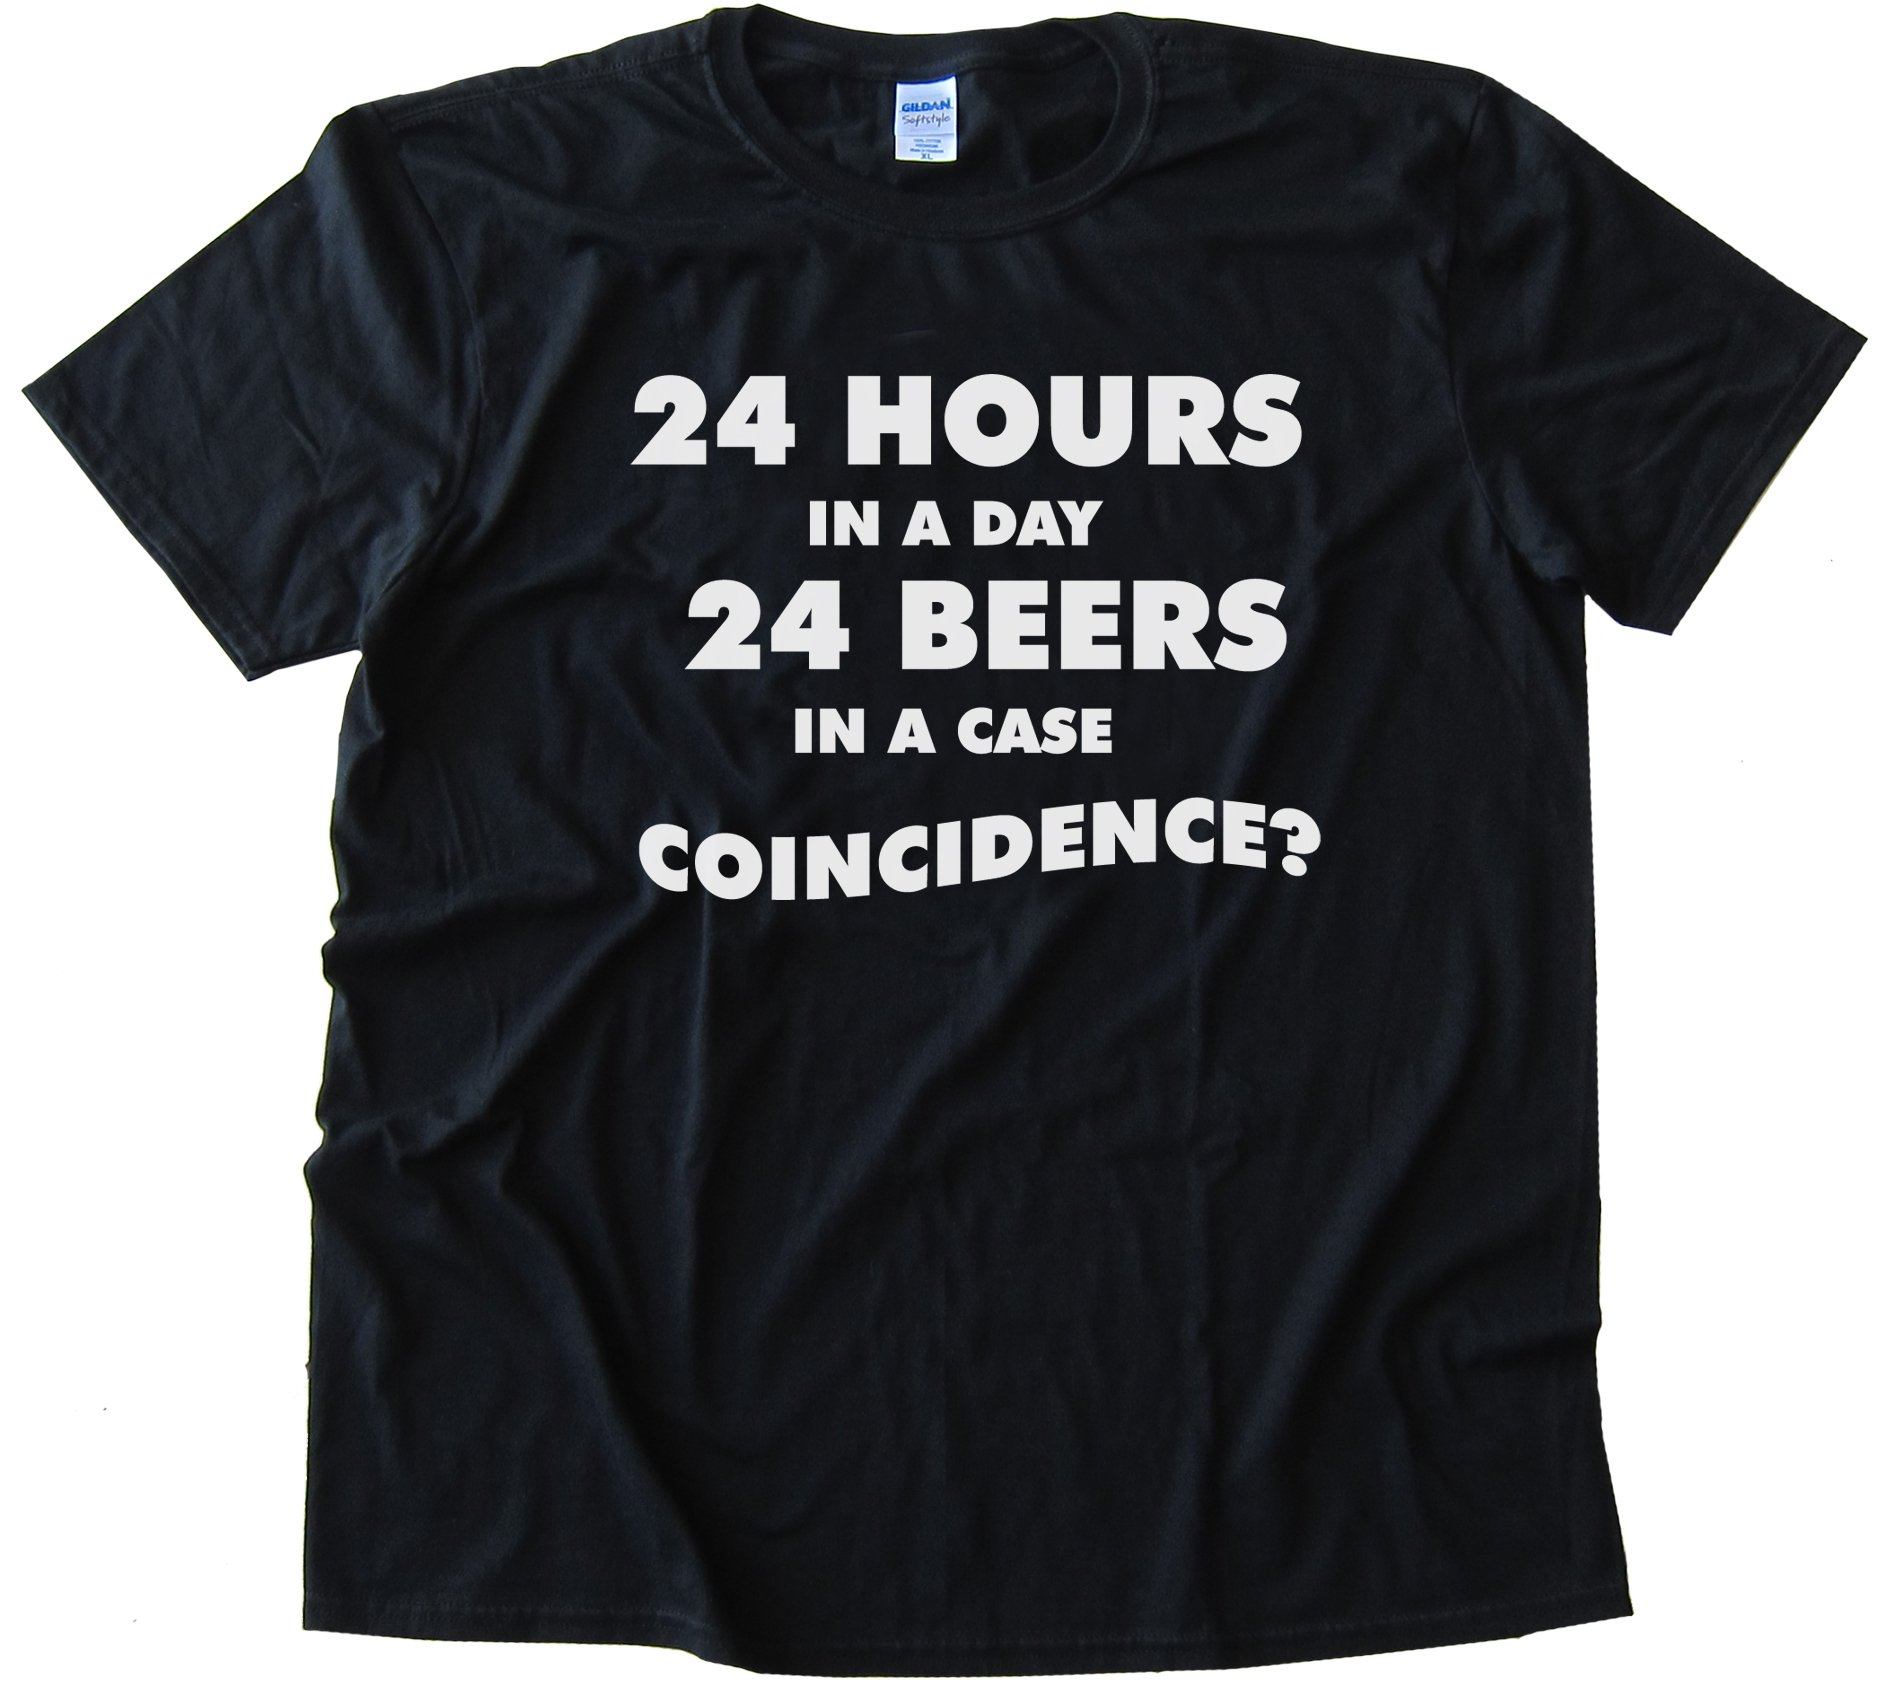 24 Hours In A Day 24 Beers In A Case - Coincidence? - Tee Shirt